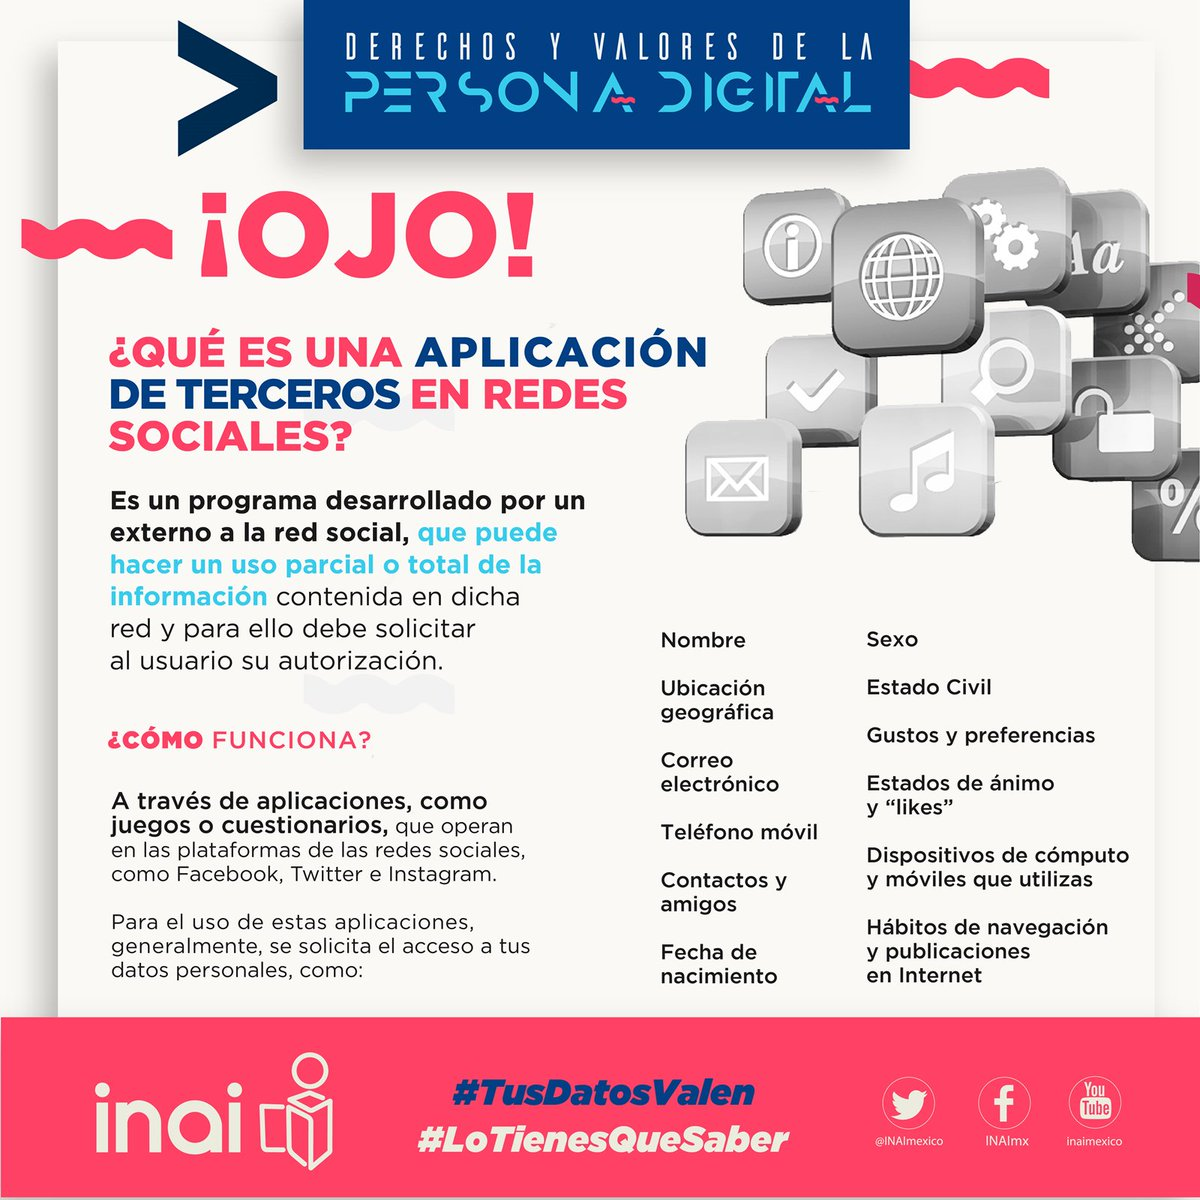 Inai On Twitter Lotienesquesaber Sabes Cuantos Datos Puedes Dar